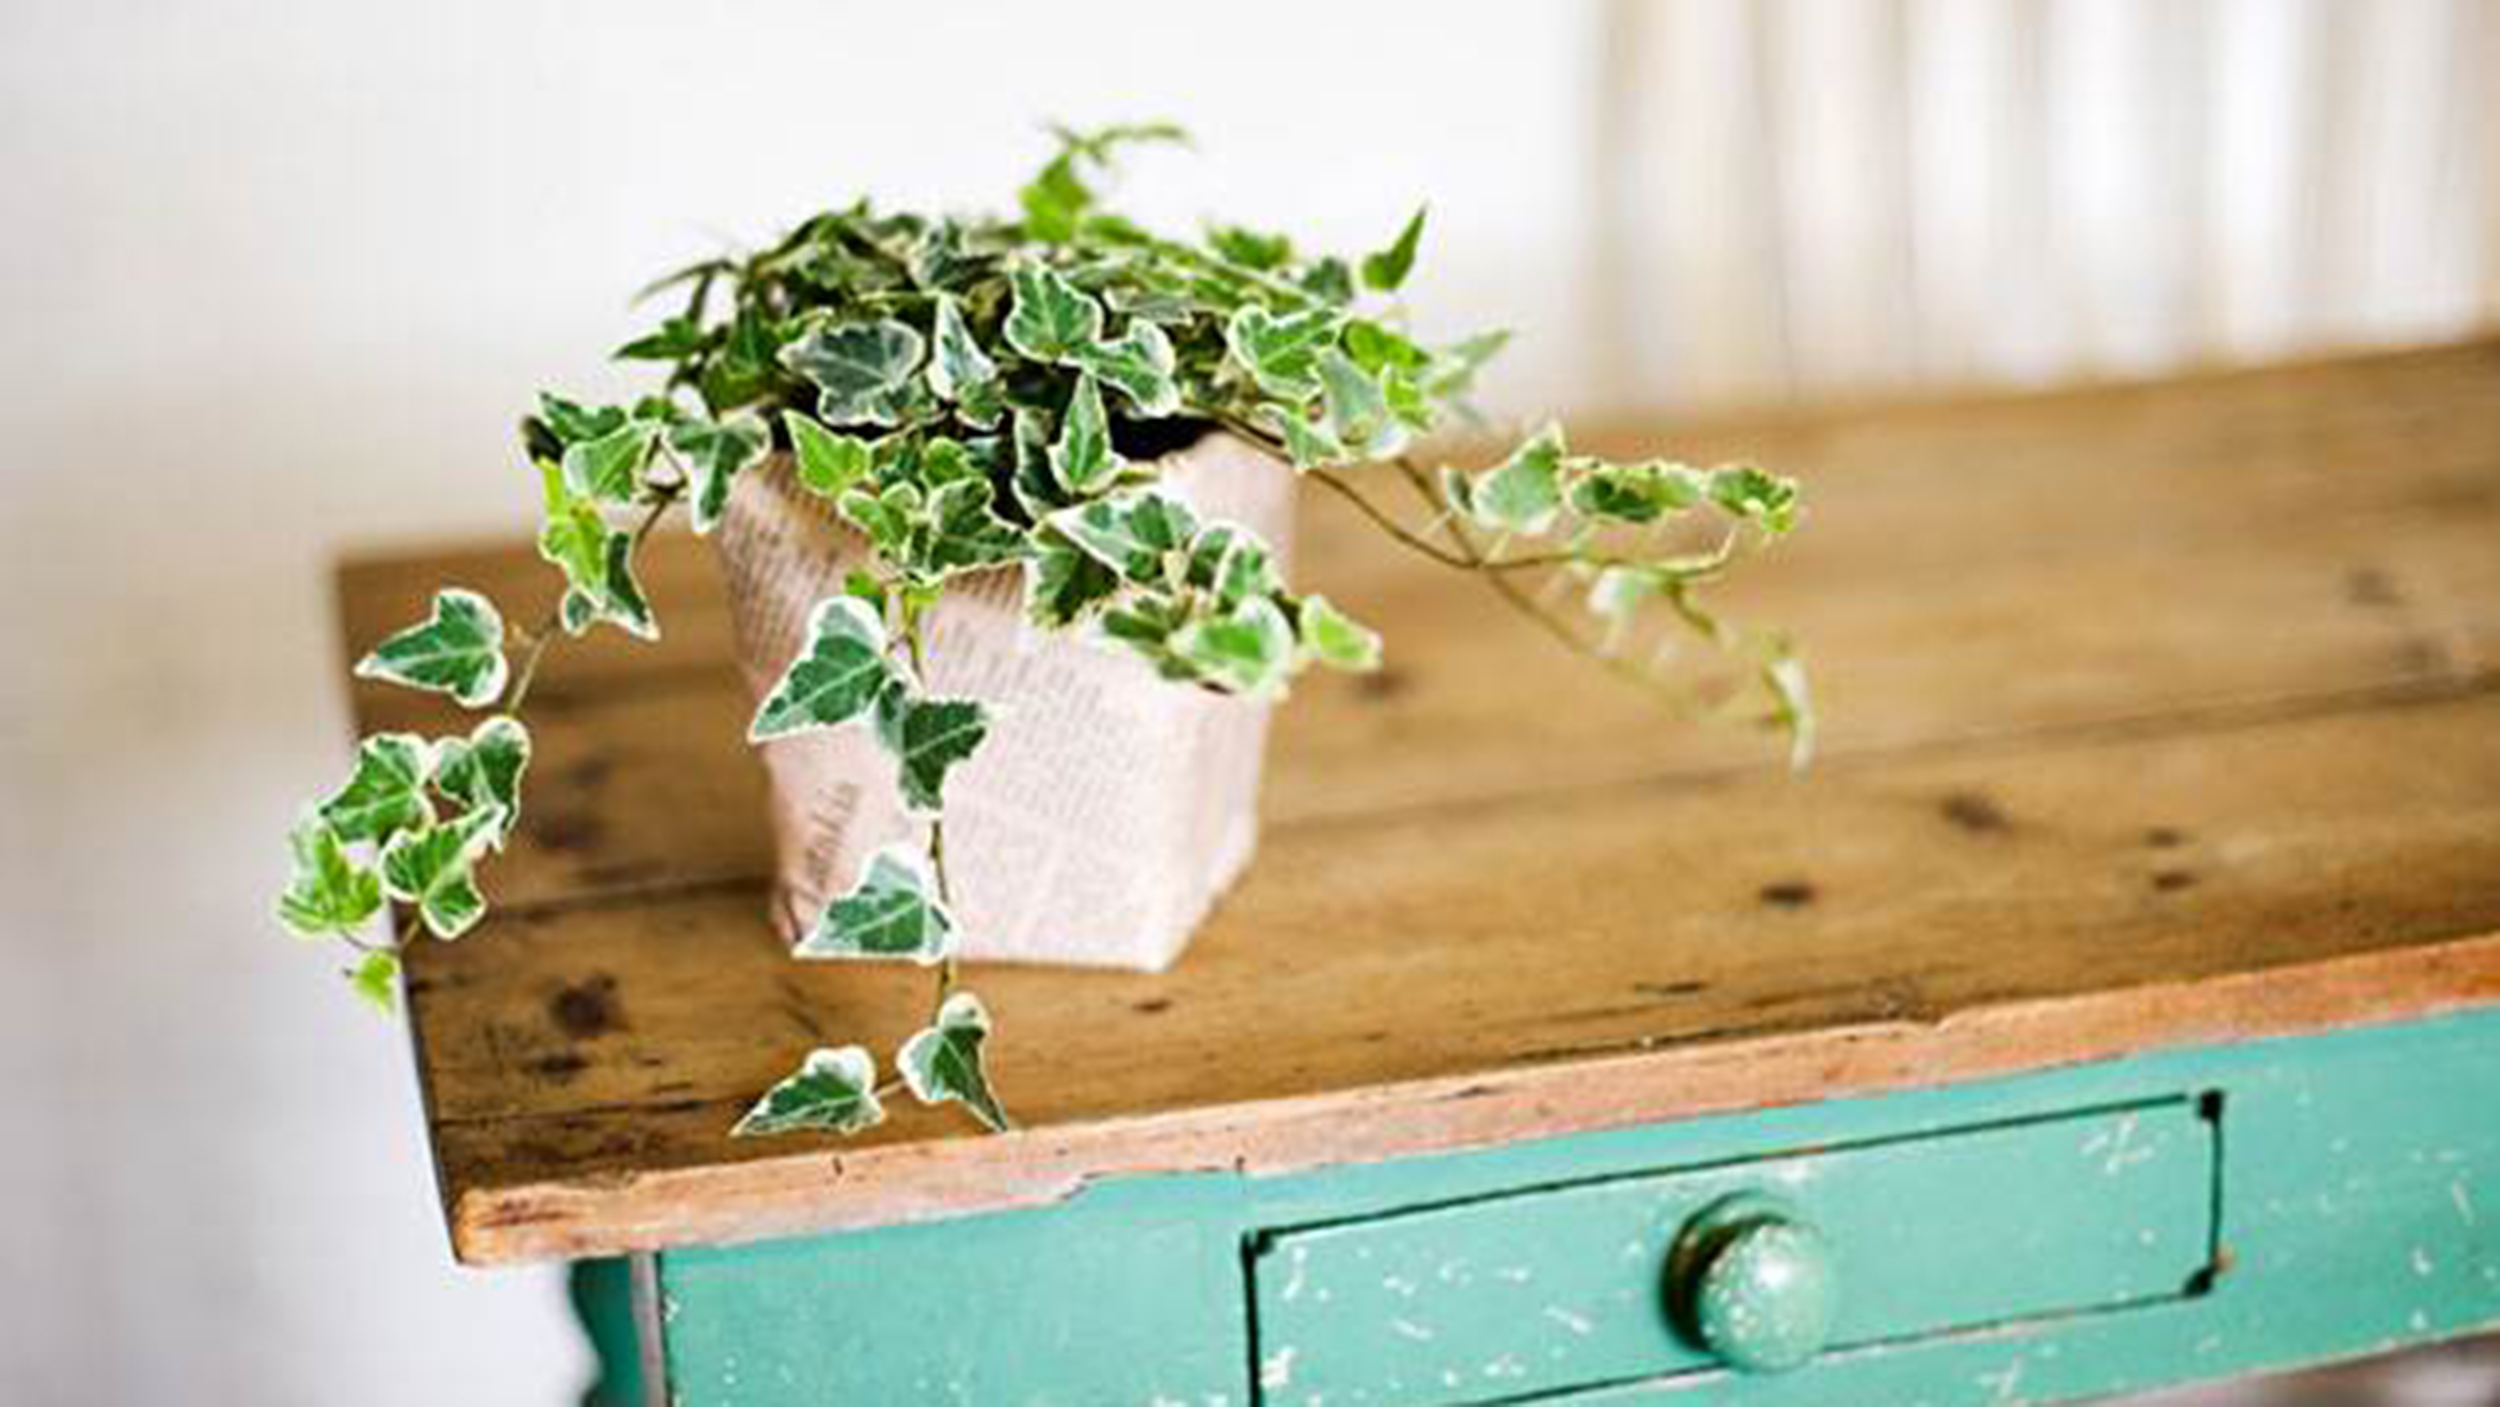 Unusual House Plants For Sale The Best And Easiest Indoor Houseplants That Won T Die On You